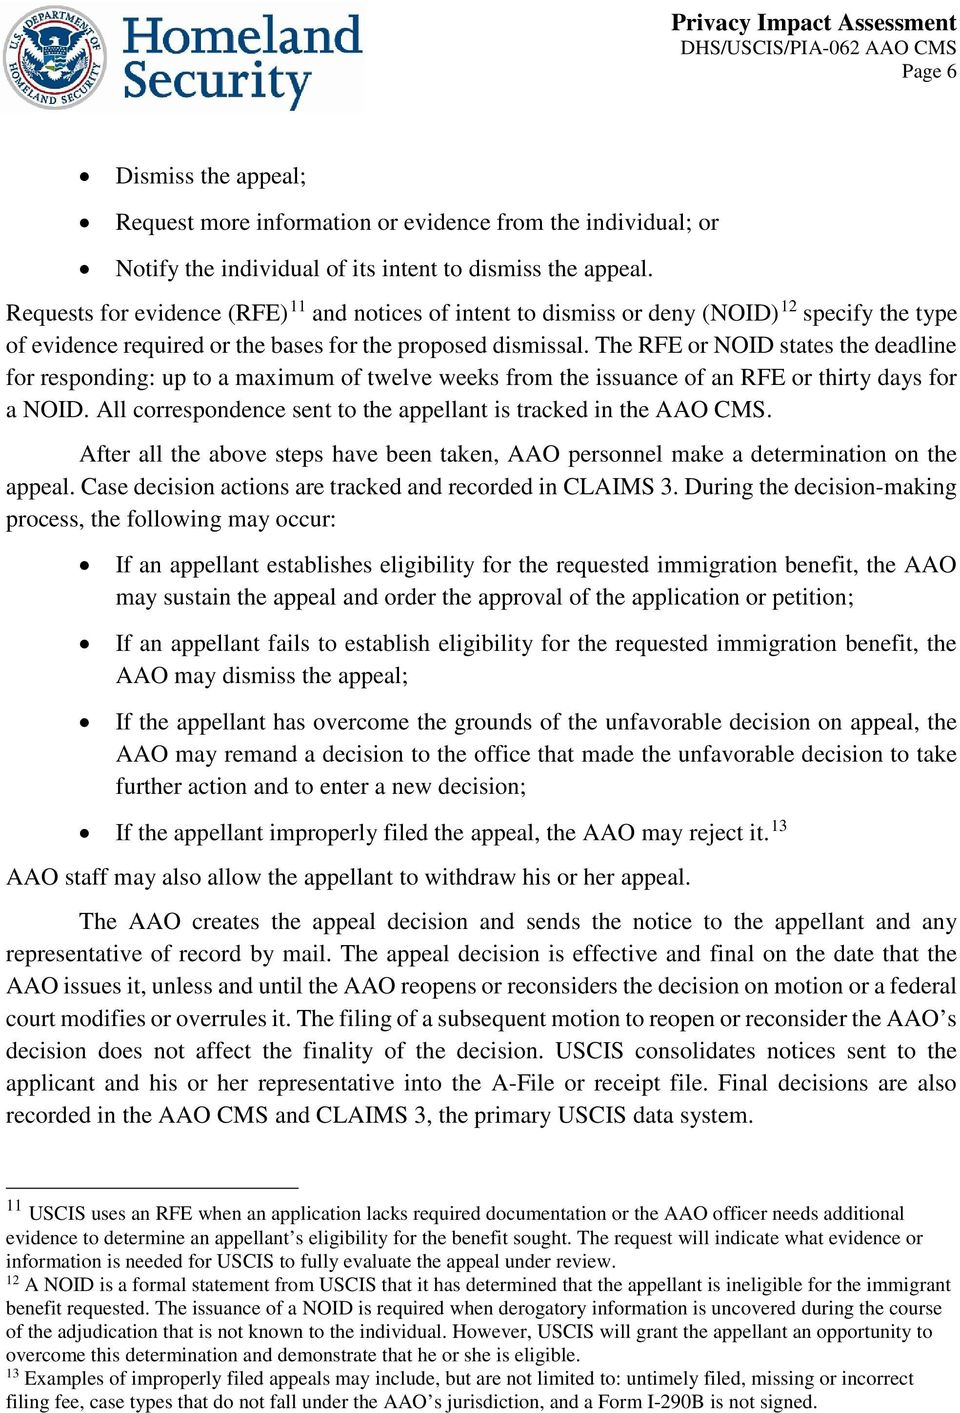 Administrative Appeals Office (AAO) Case Management System - PDF